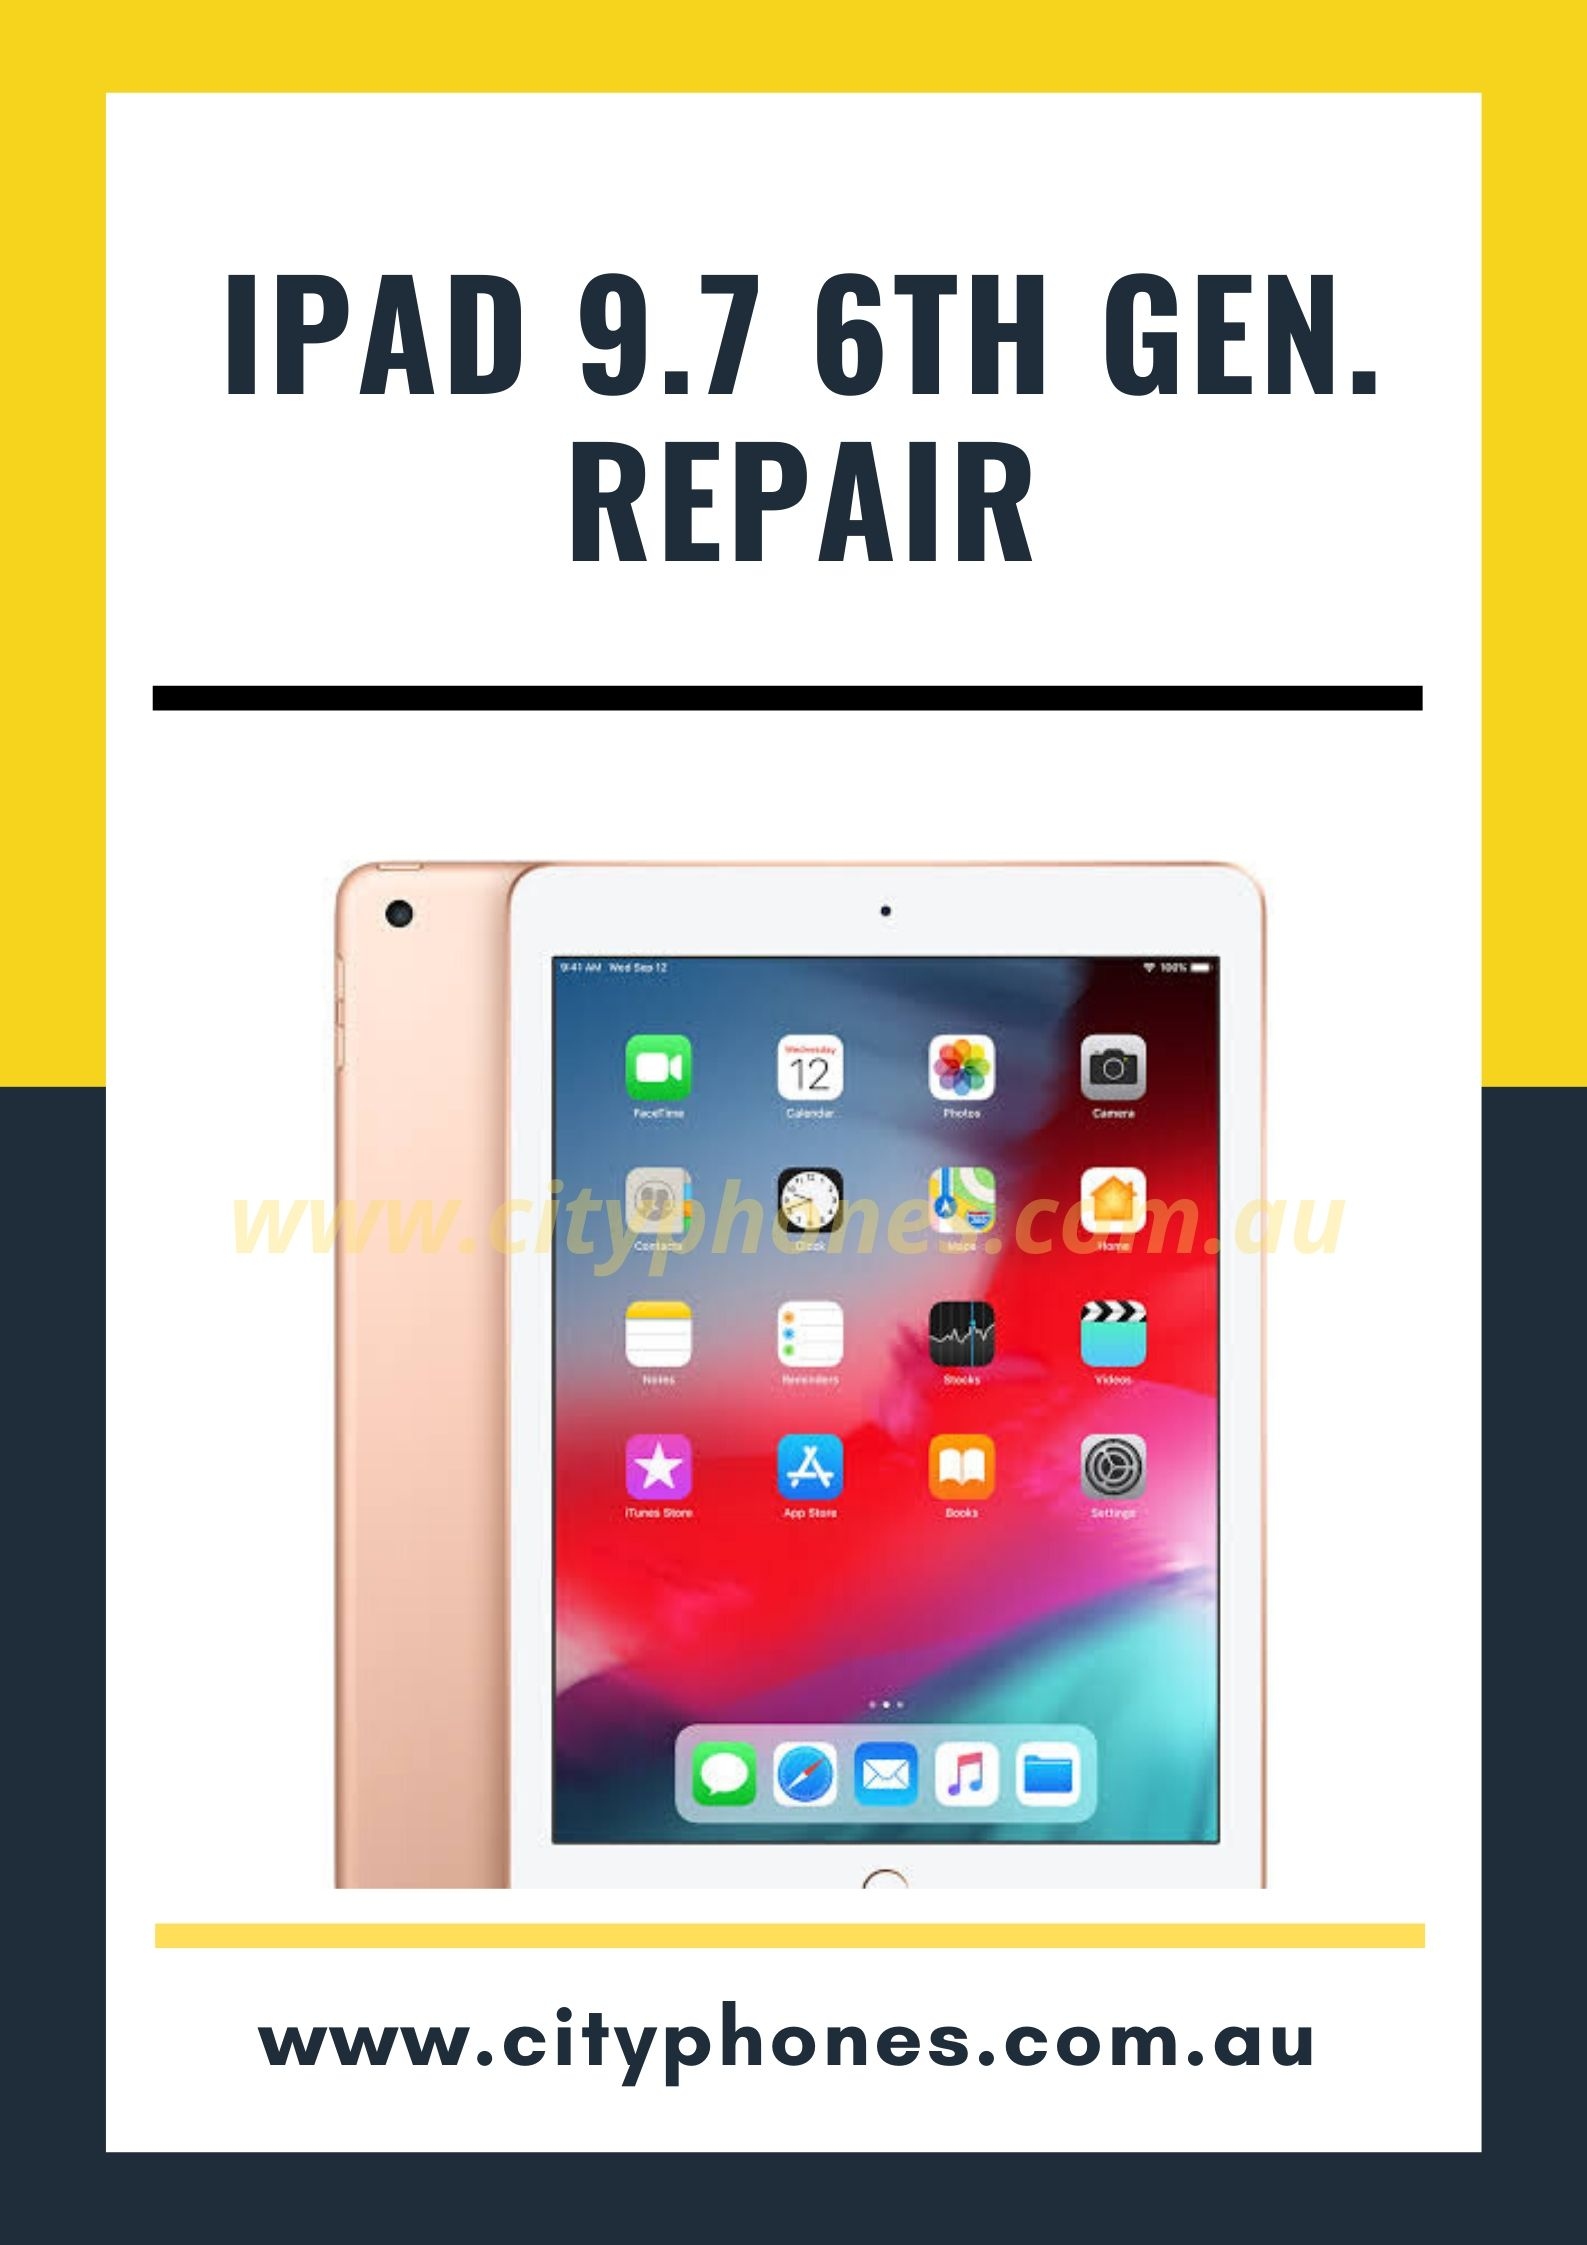 ipad 9.7 6th generation screen repair